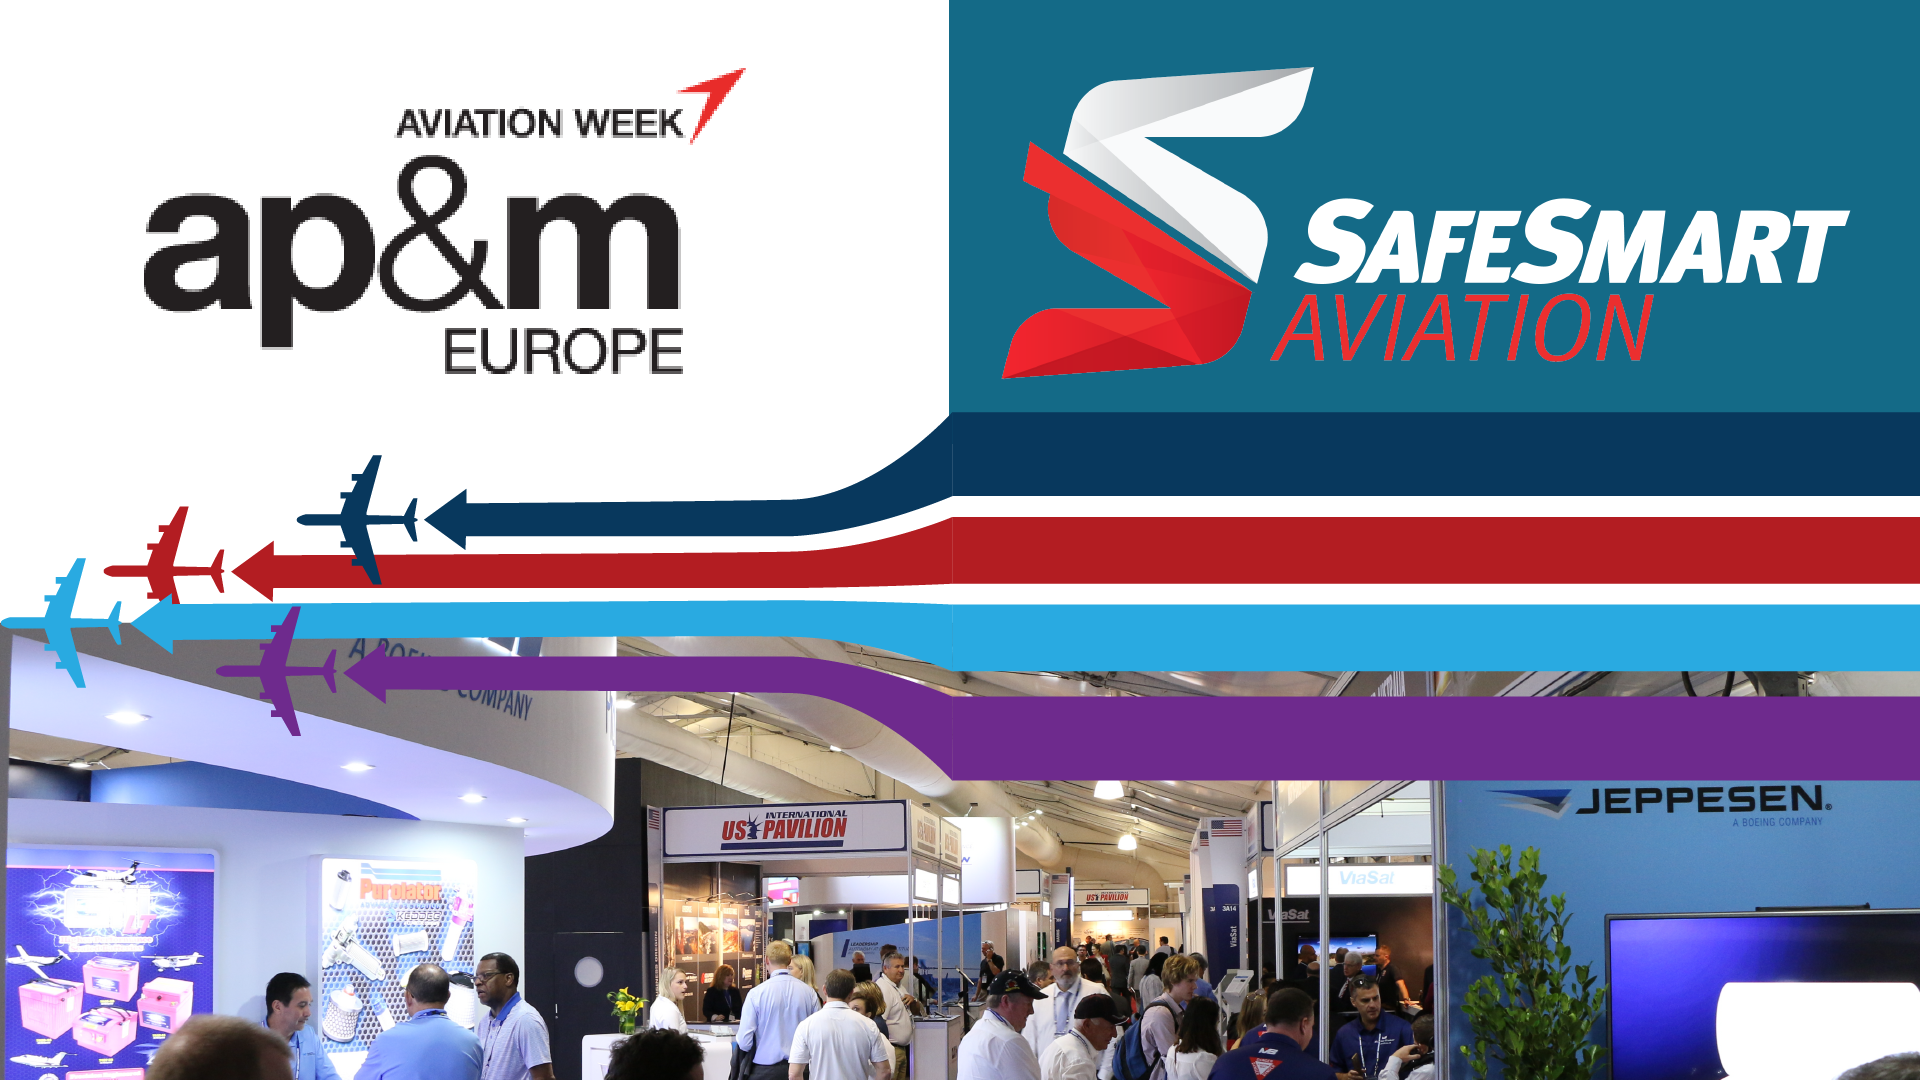 SafeSmart Aviation at ap&m London